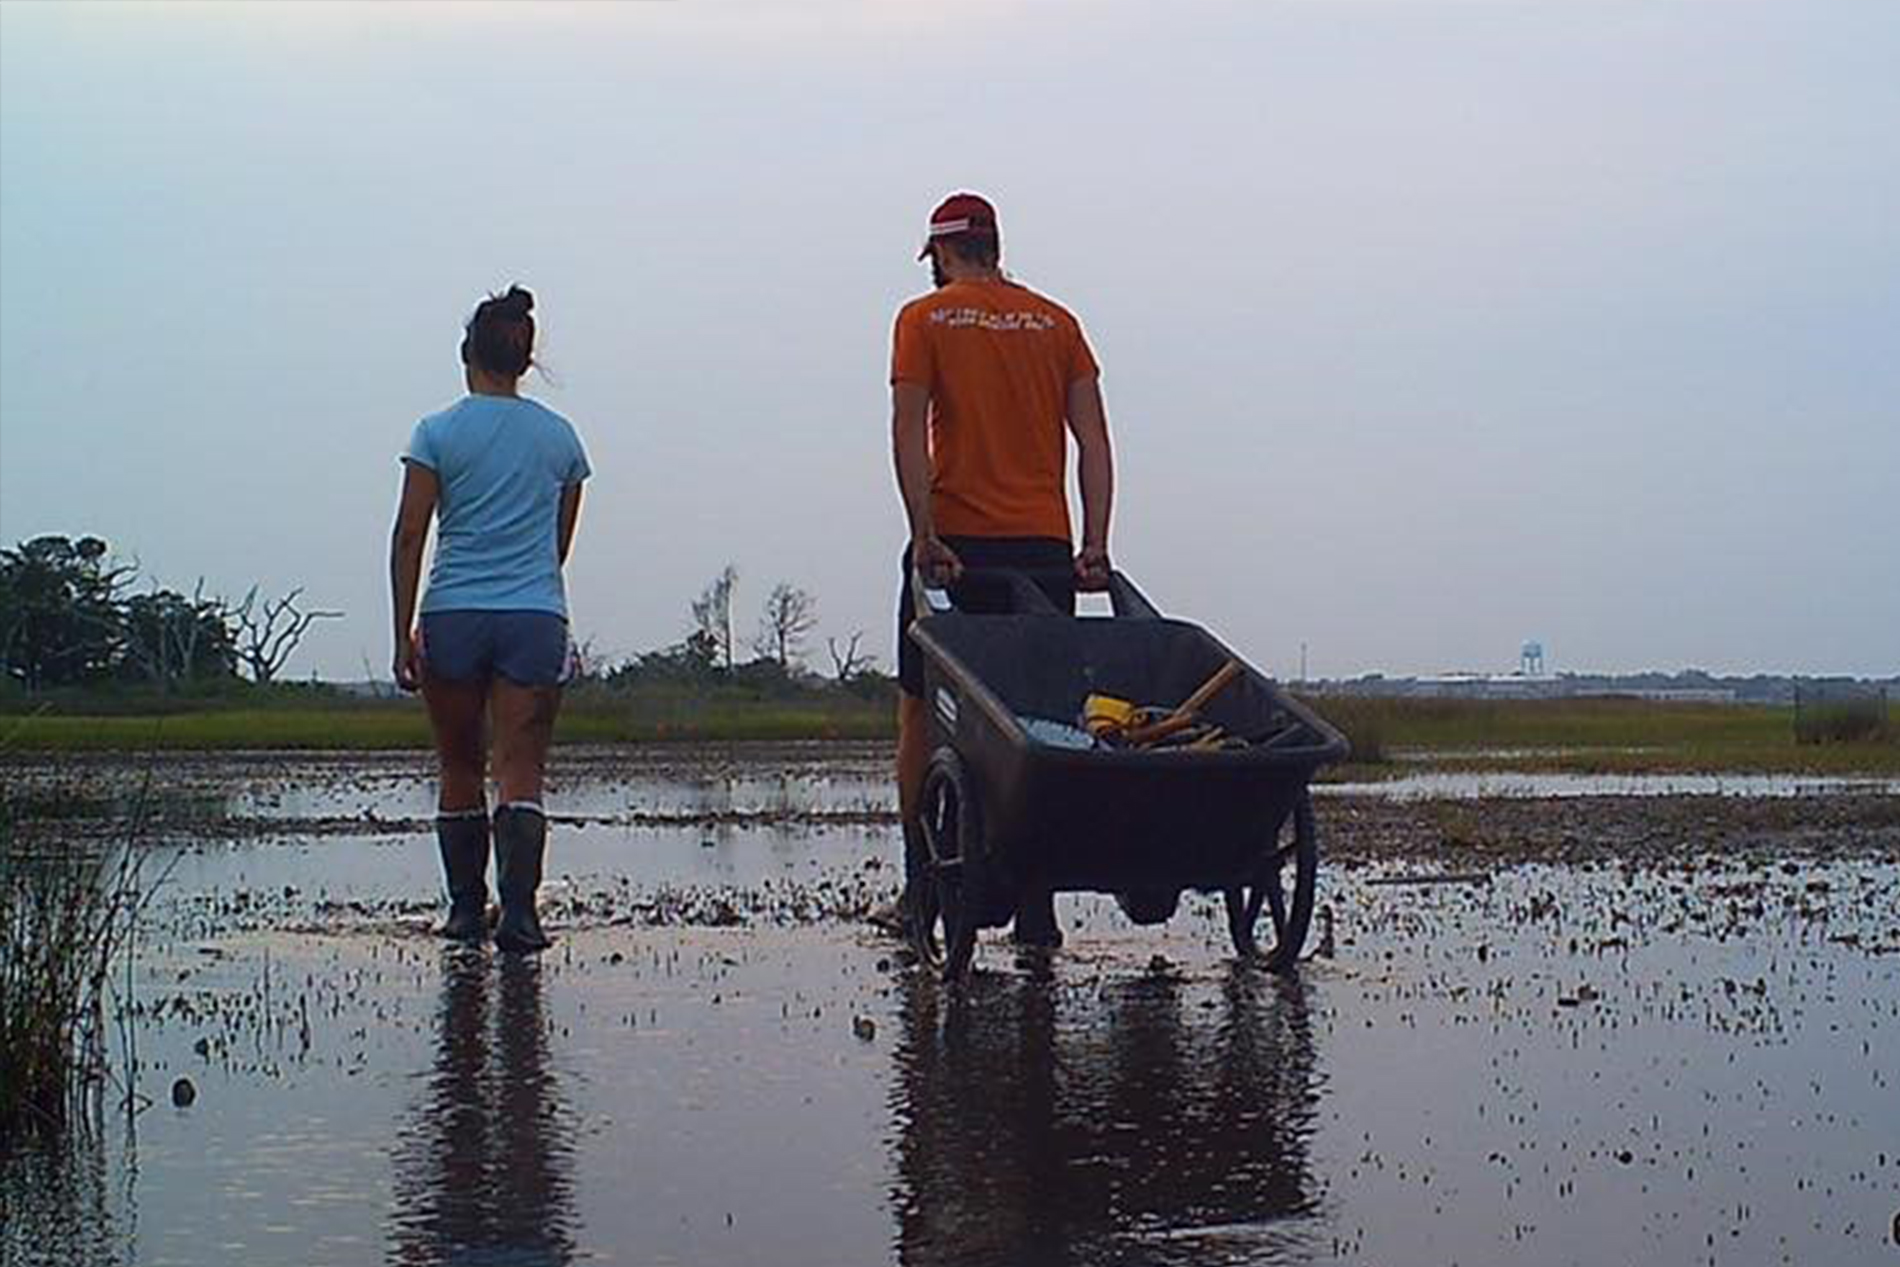 a young woman and man walk through a marsh; the man pulls a wheelbarrow full of supplies behind him